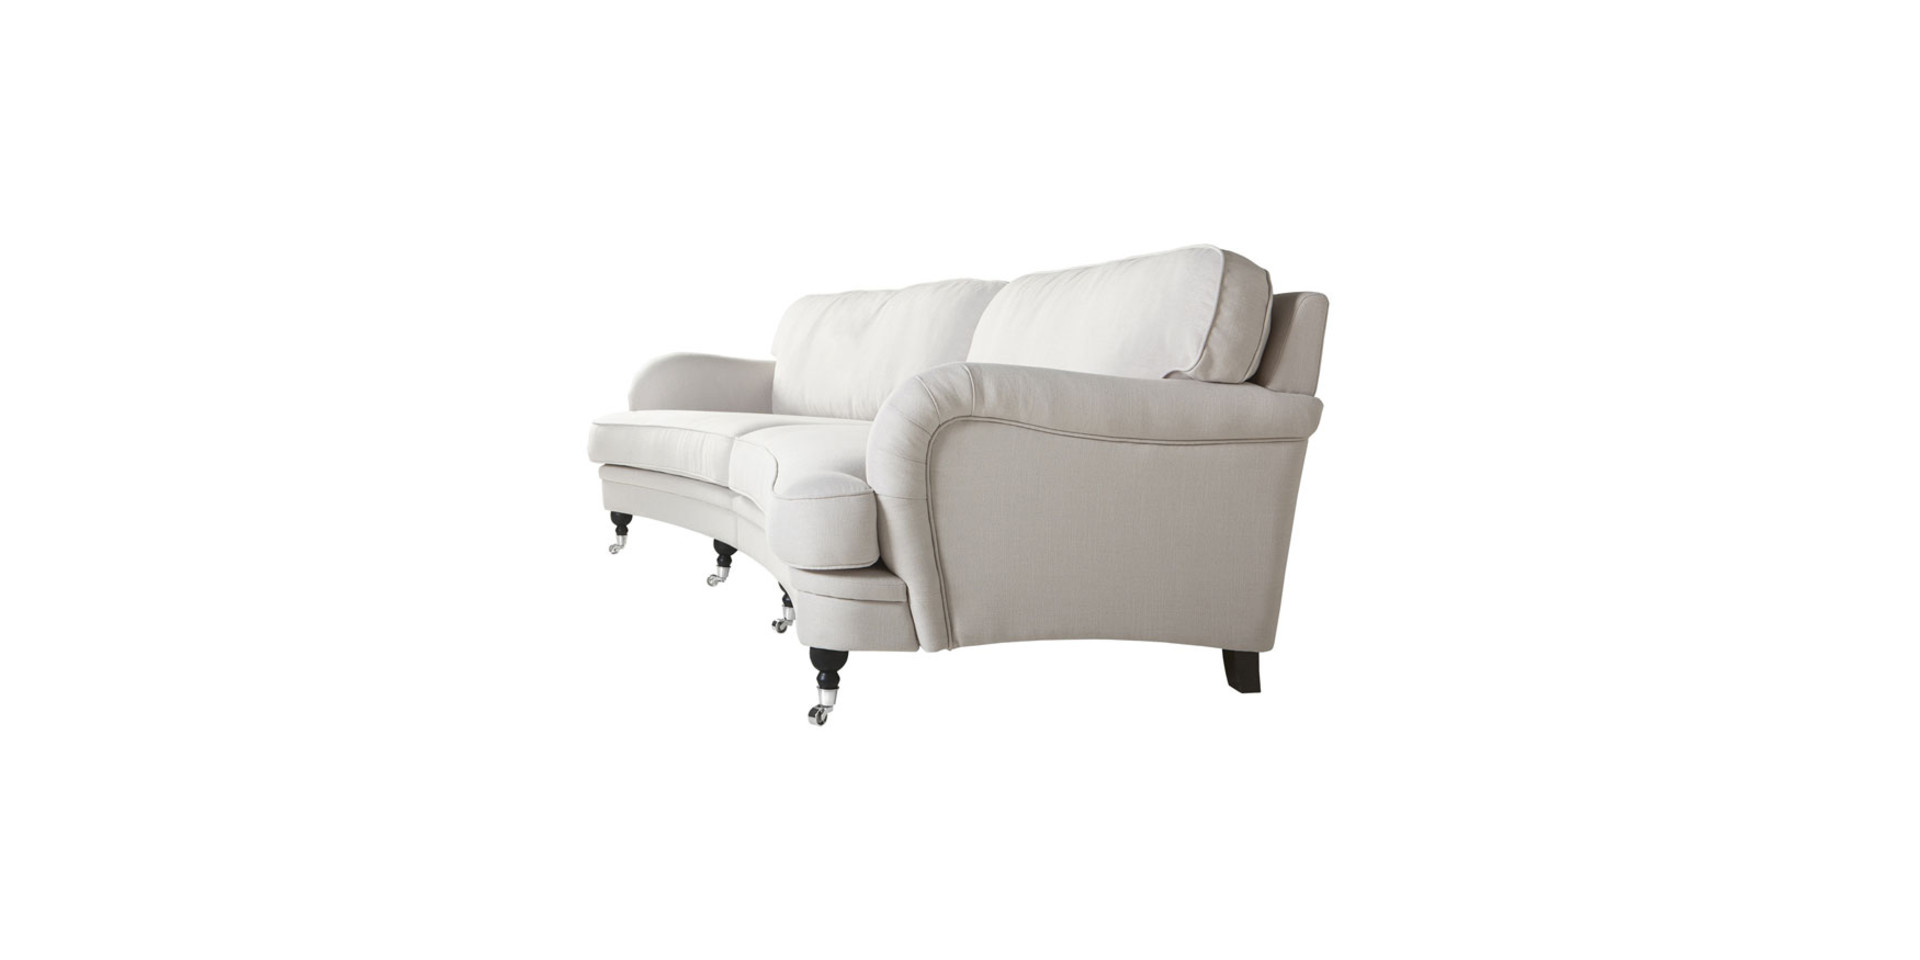 sits-olle-canape-35seater_nilo31_light_grey_6